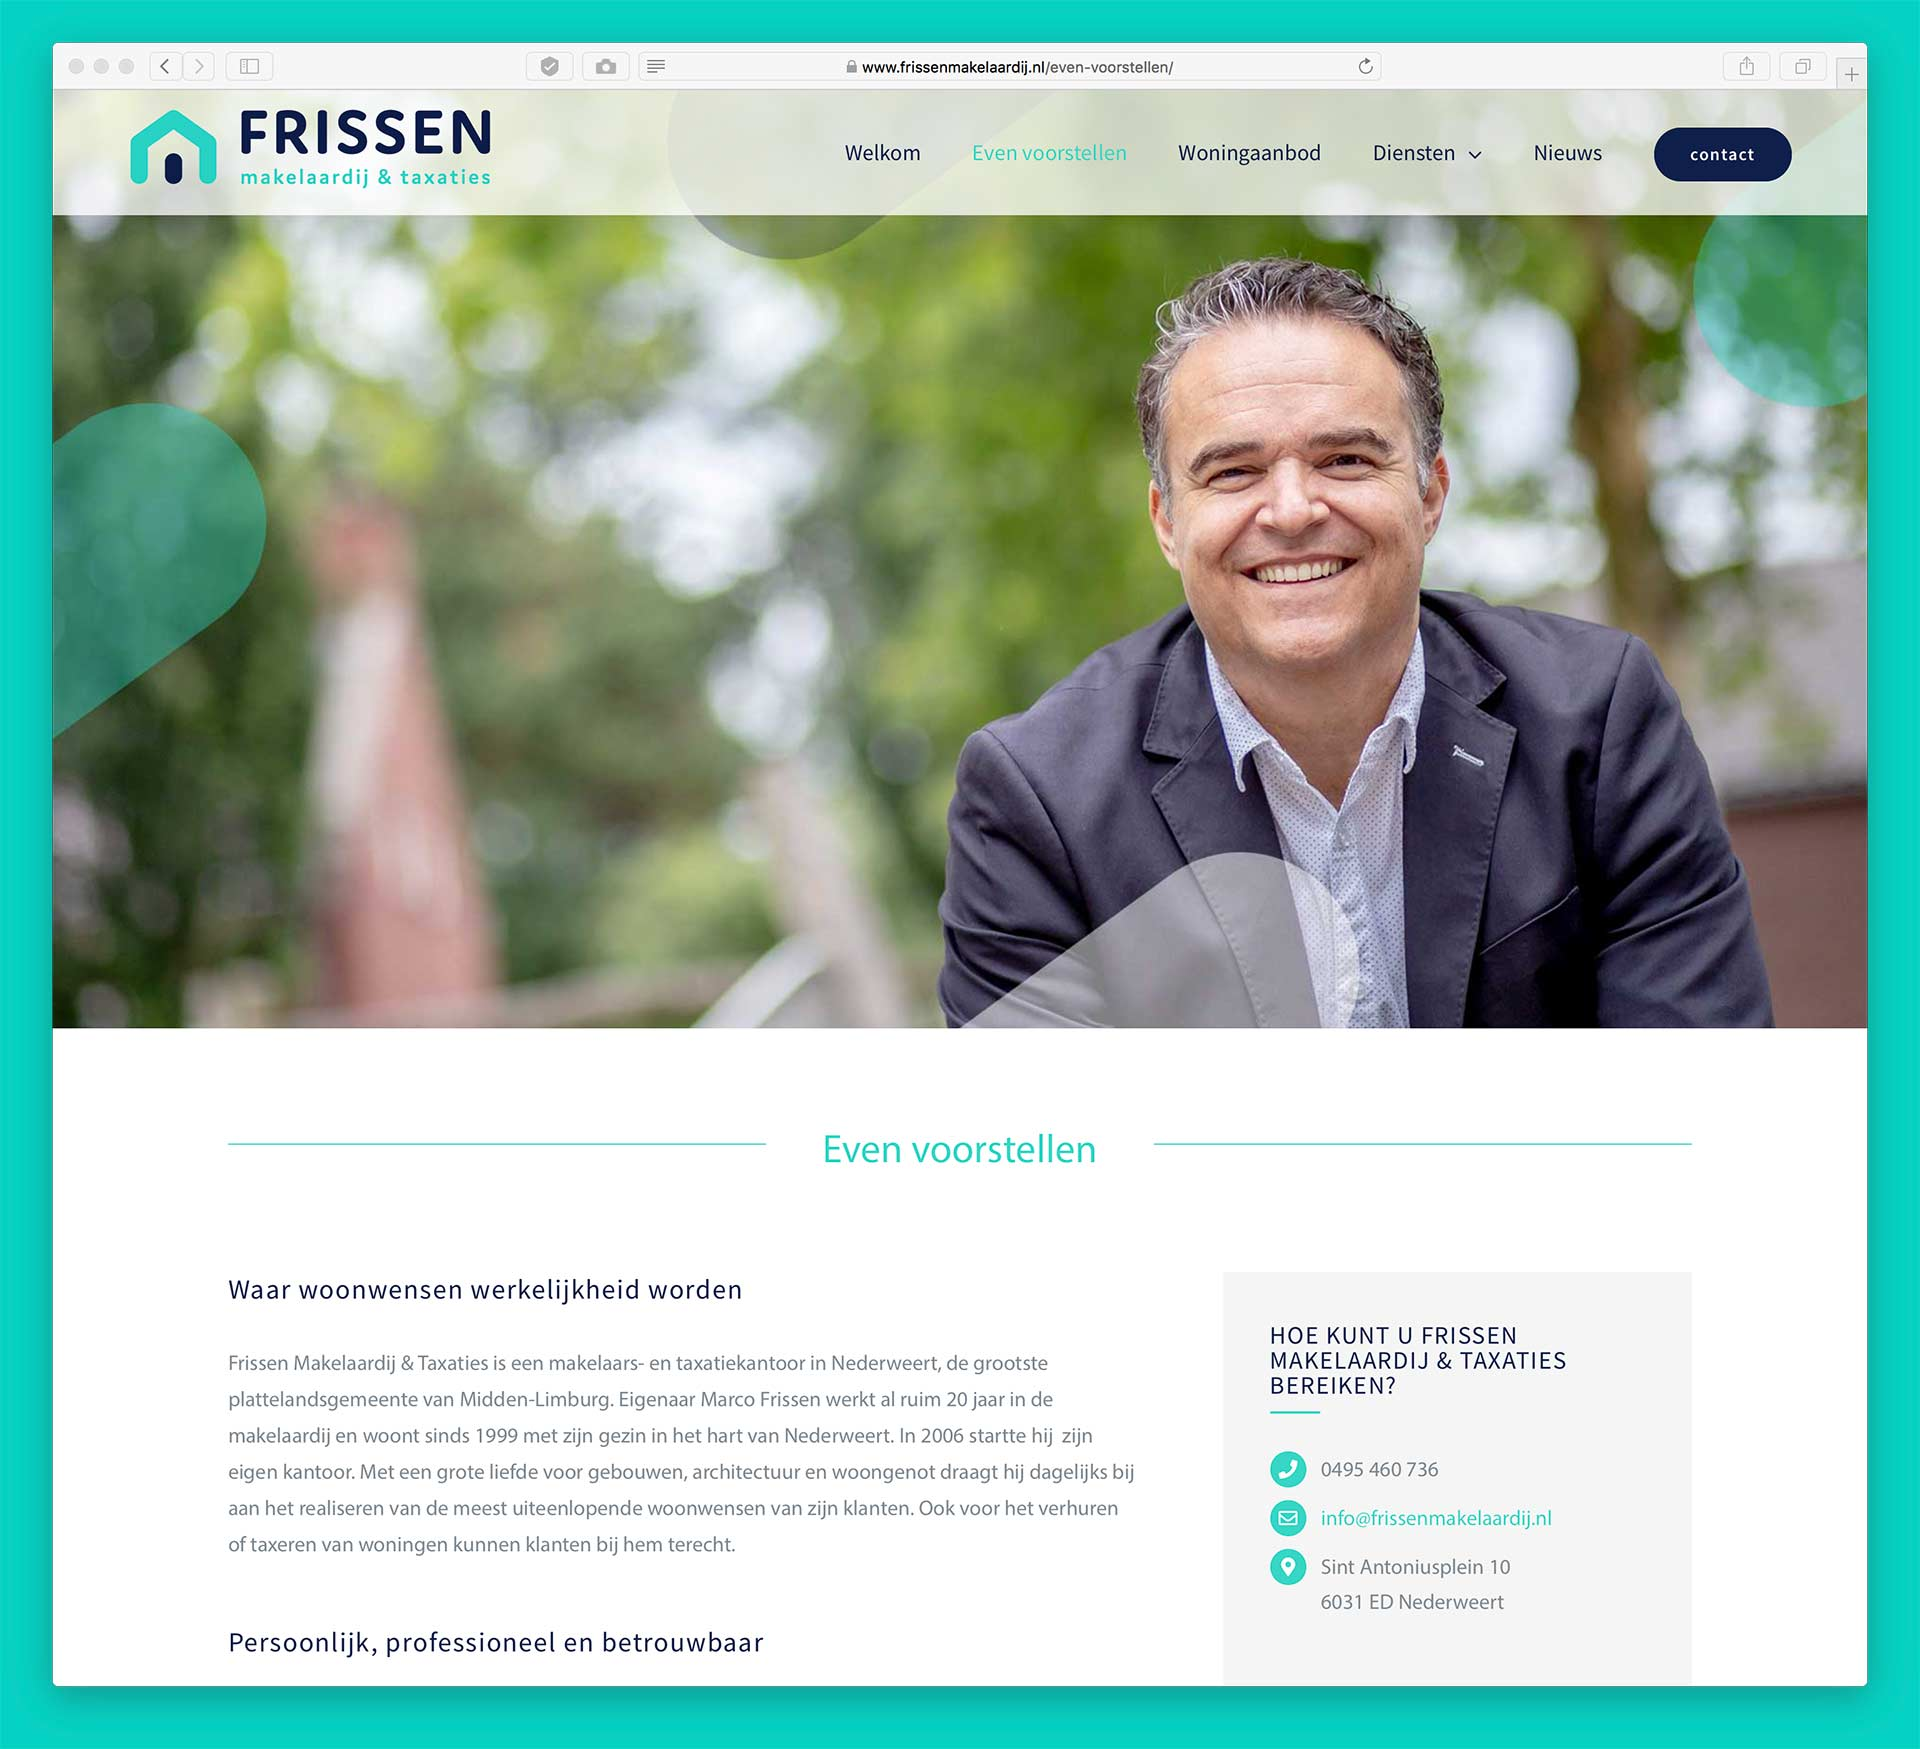 Frissen_makelaardij_website1